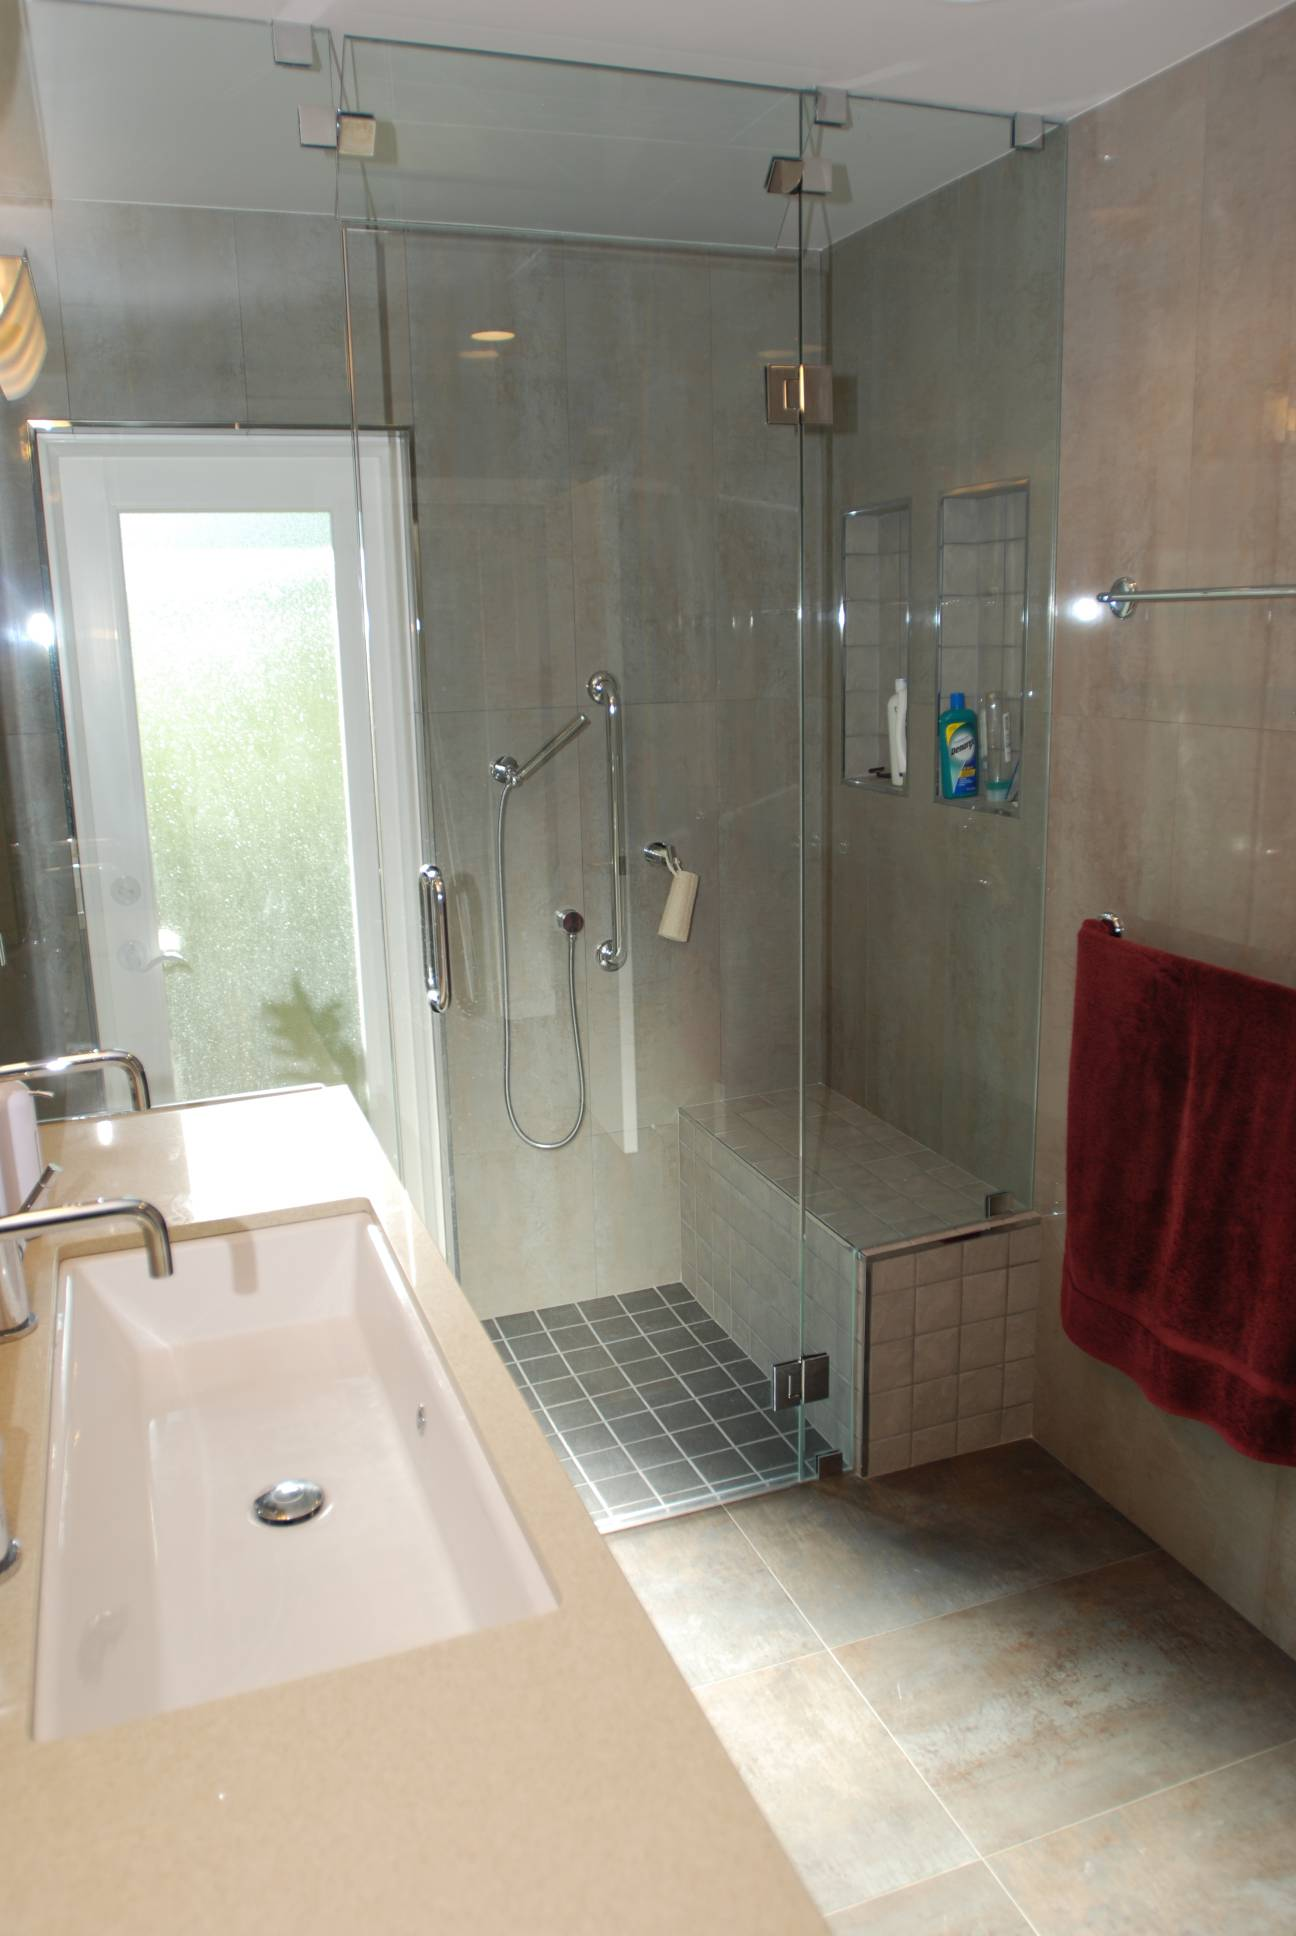 Walk-In Shower, Architect work, Interior design work, Menlo Park